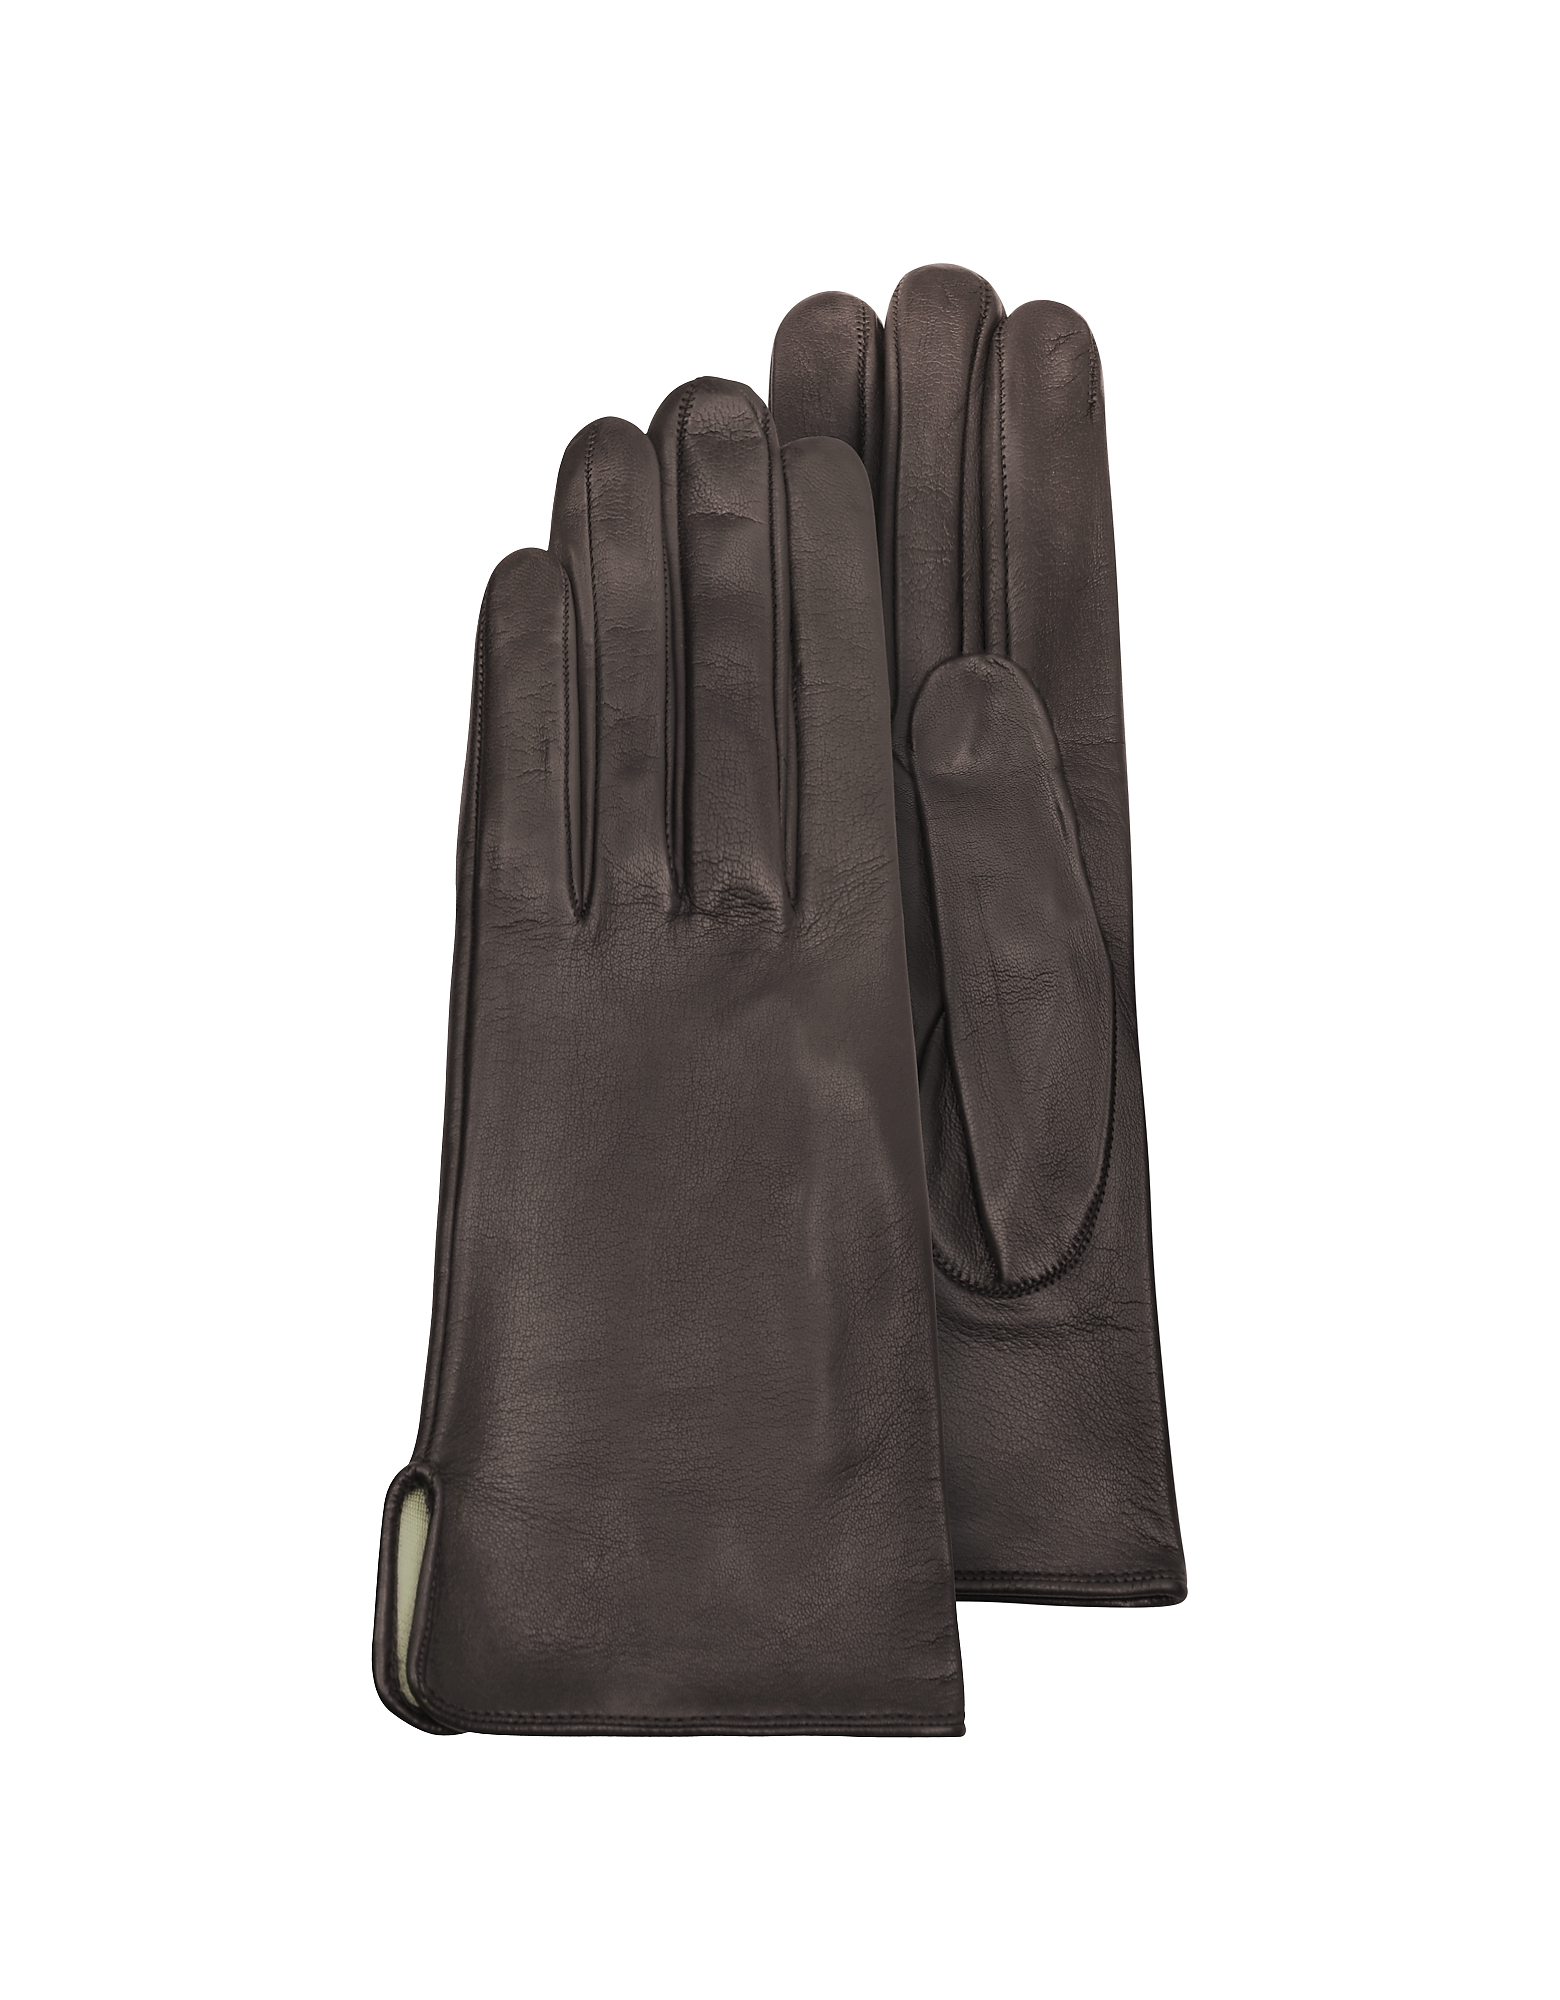 Forzieri Designer Women's Gloves, Women's Brown Calf Leather Gloves w/ Silk Lining